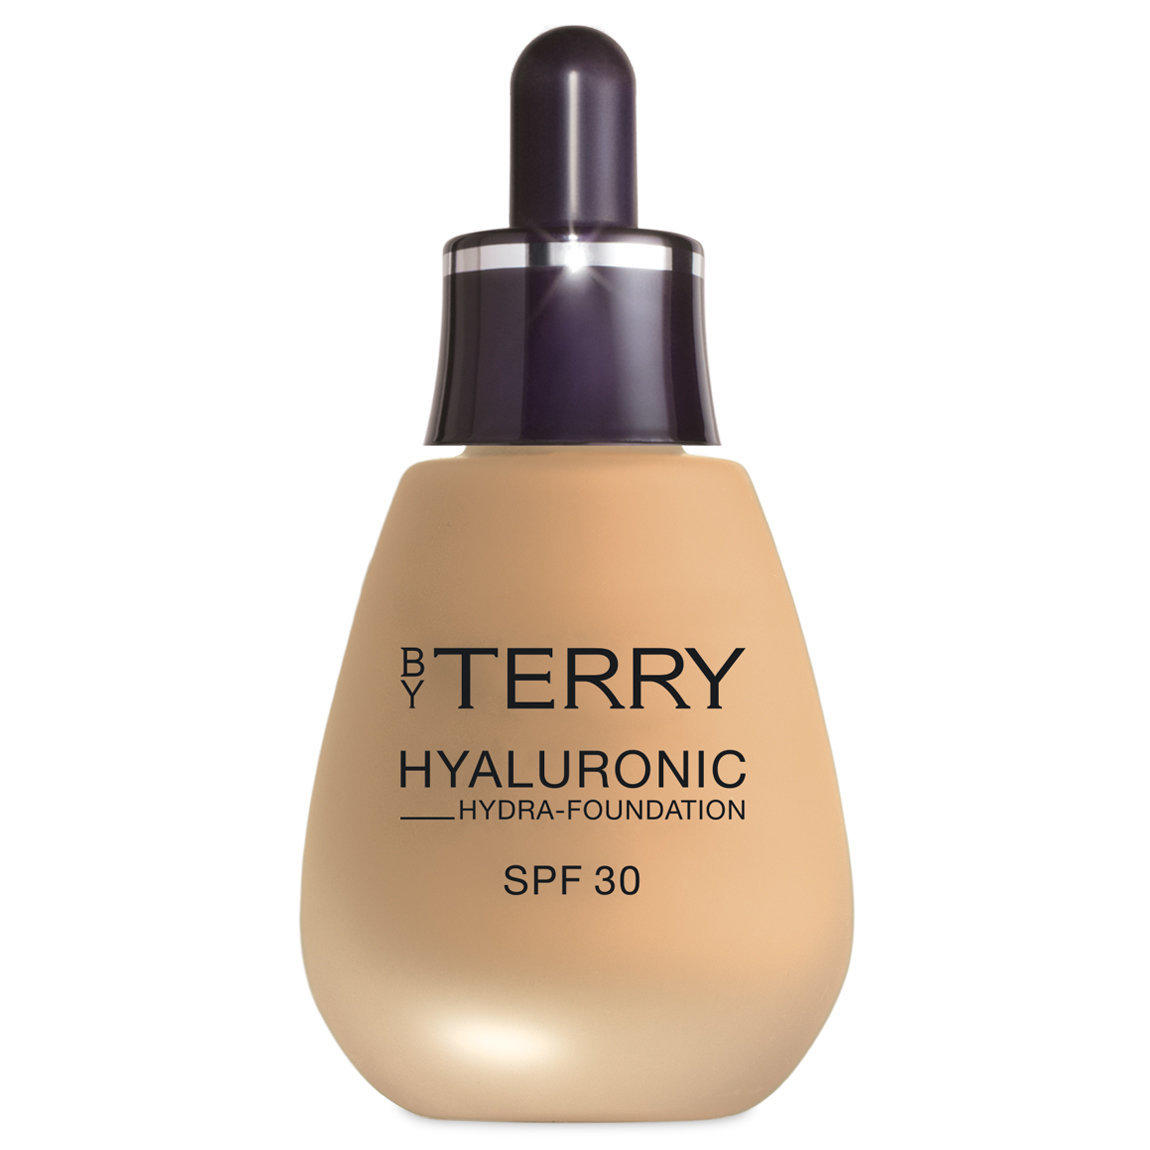 By Terry Hyaluronic Hydra-Foundation Natural 200N